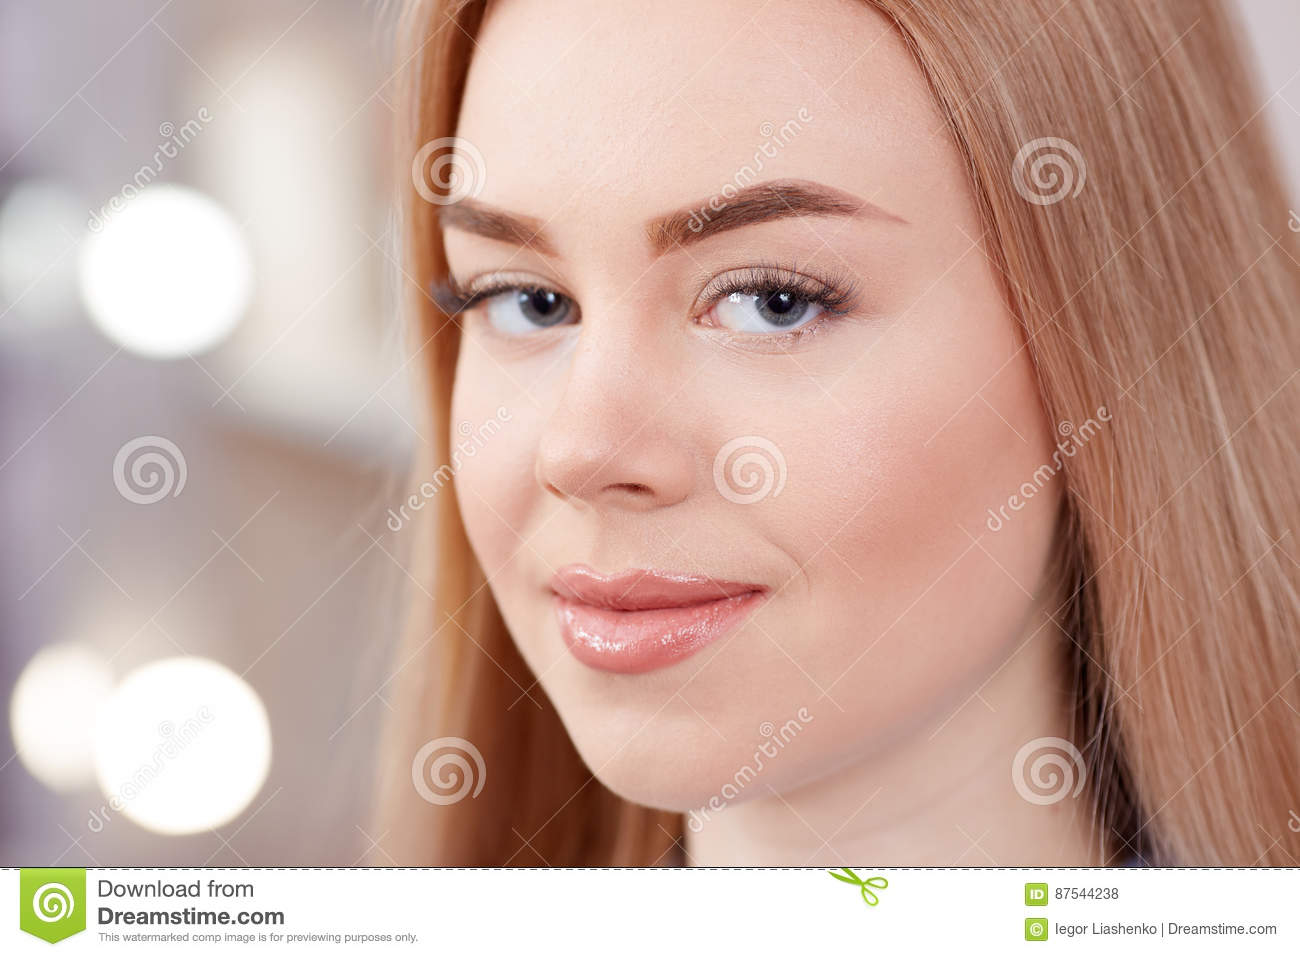 Girl After Procedure Of Permanent Makeup Of Eyebrows Stock Photo